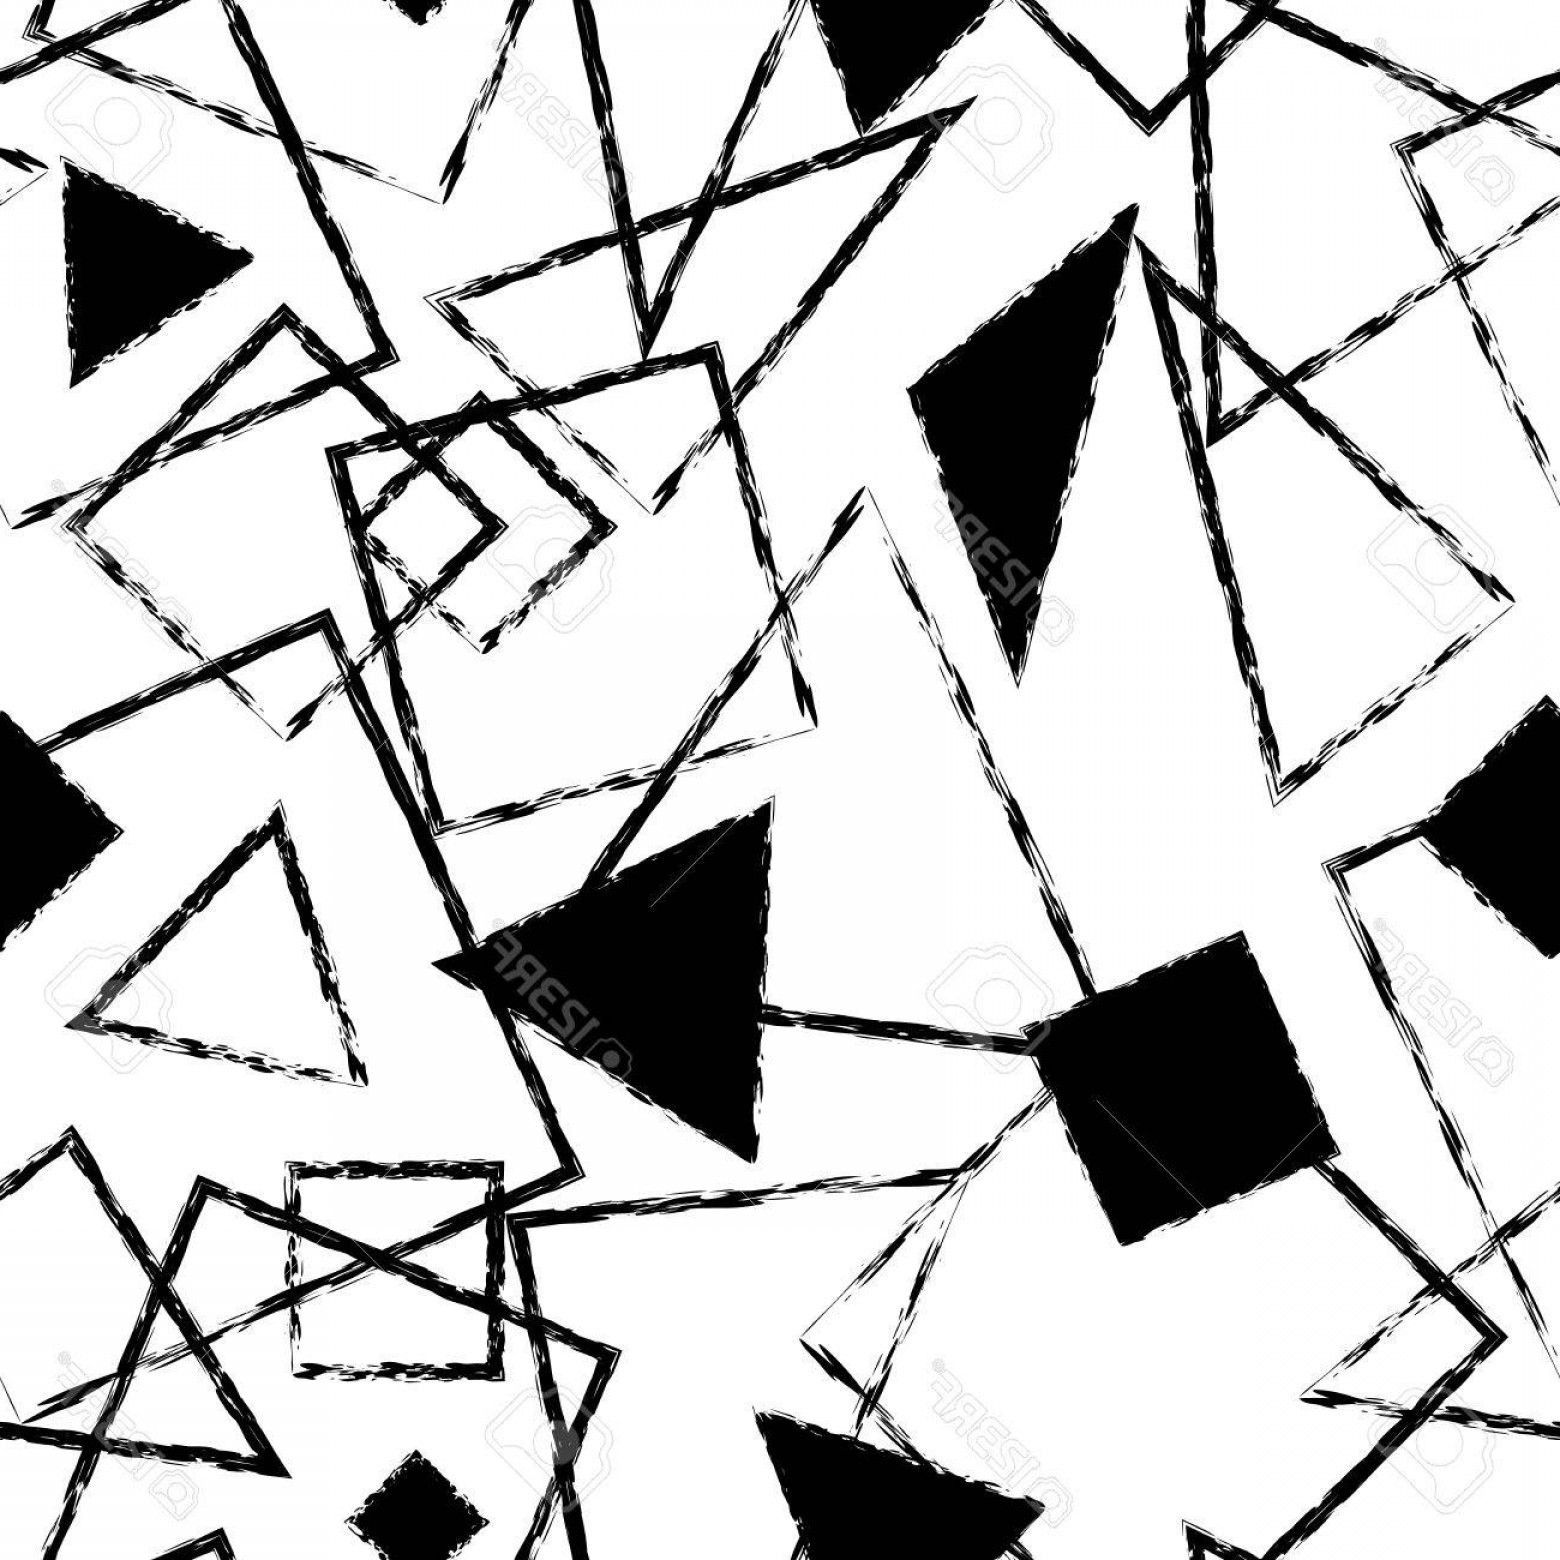 1560x1560 Black And White Vector Shapes Arenawp